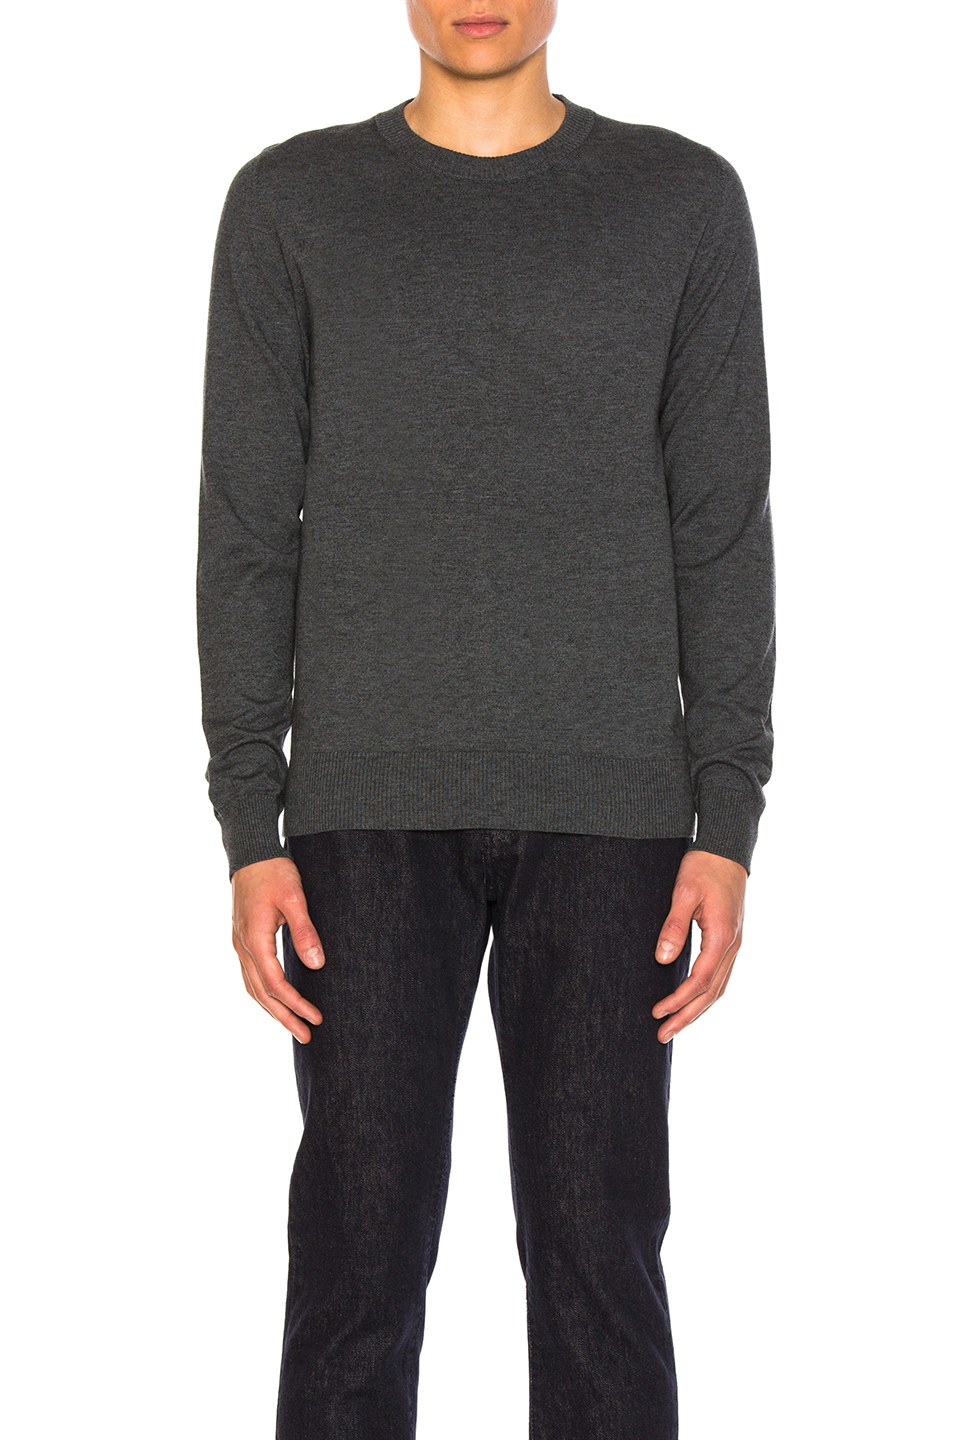 Maison Margiela Elbow Patch Pullover Sweater in Blue,Gray